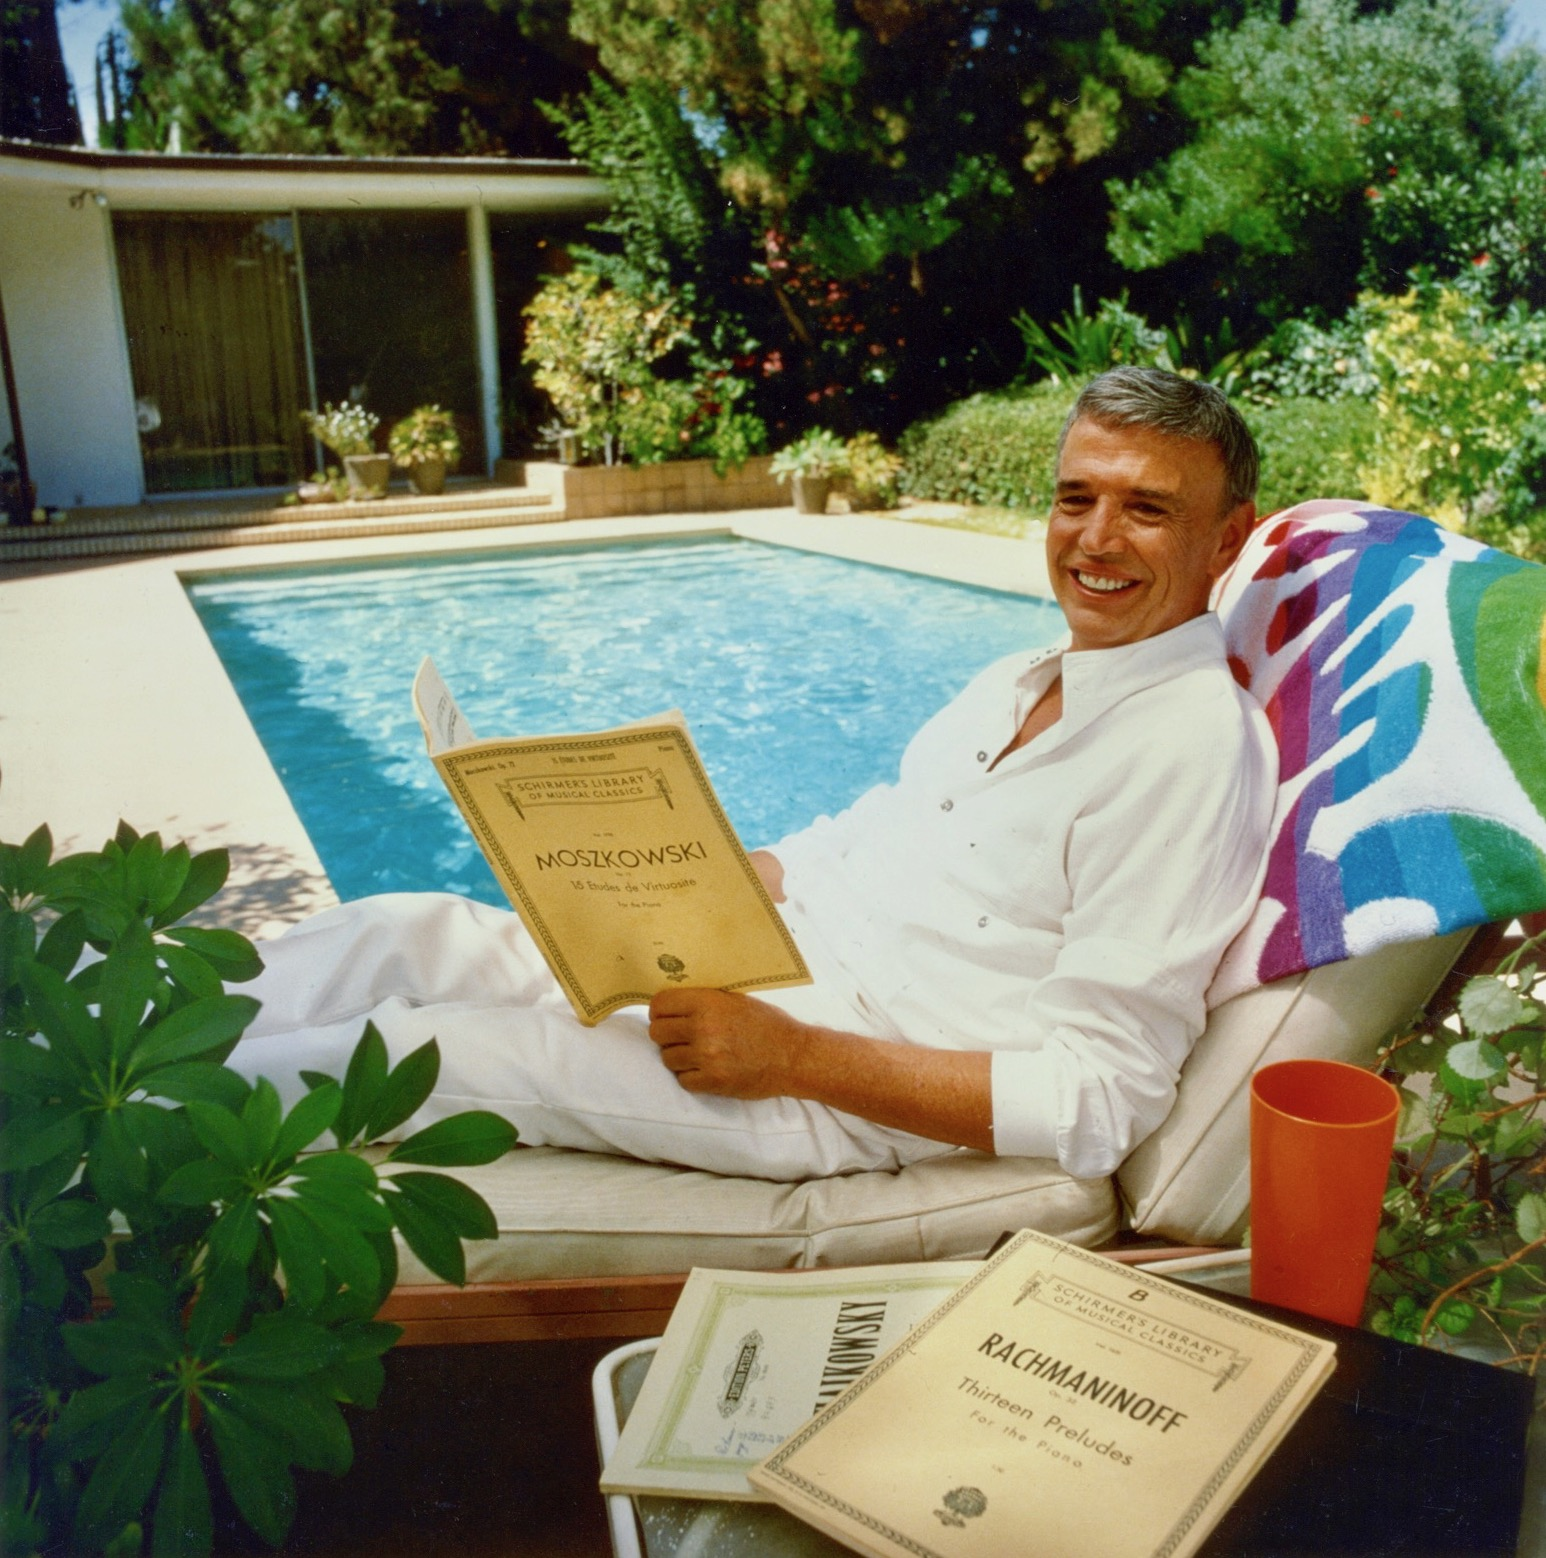 Roger at his poolside